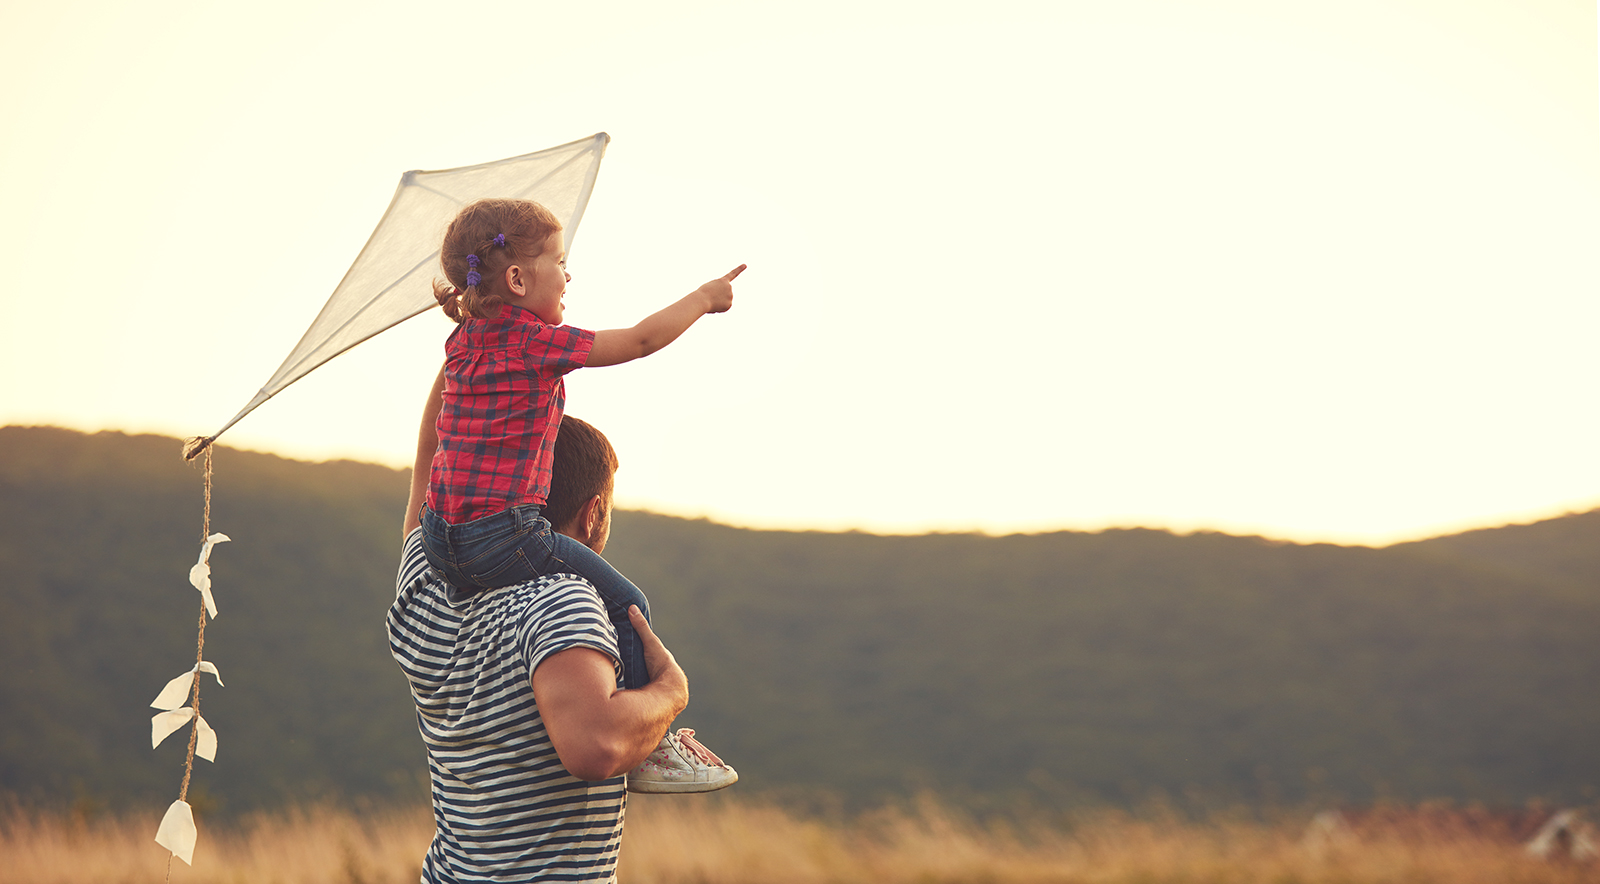 child sitting on her dad's shoulders while holding a kite